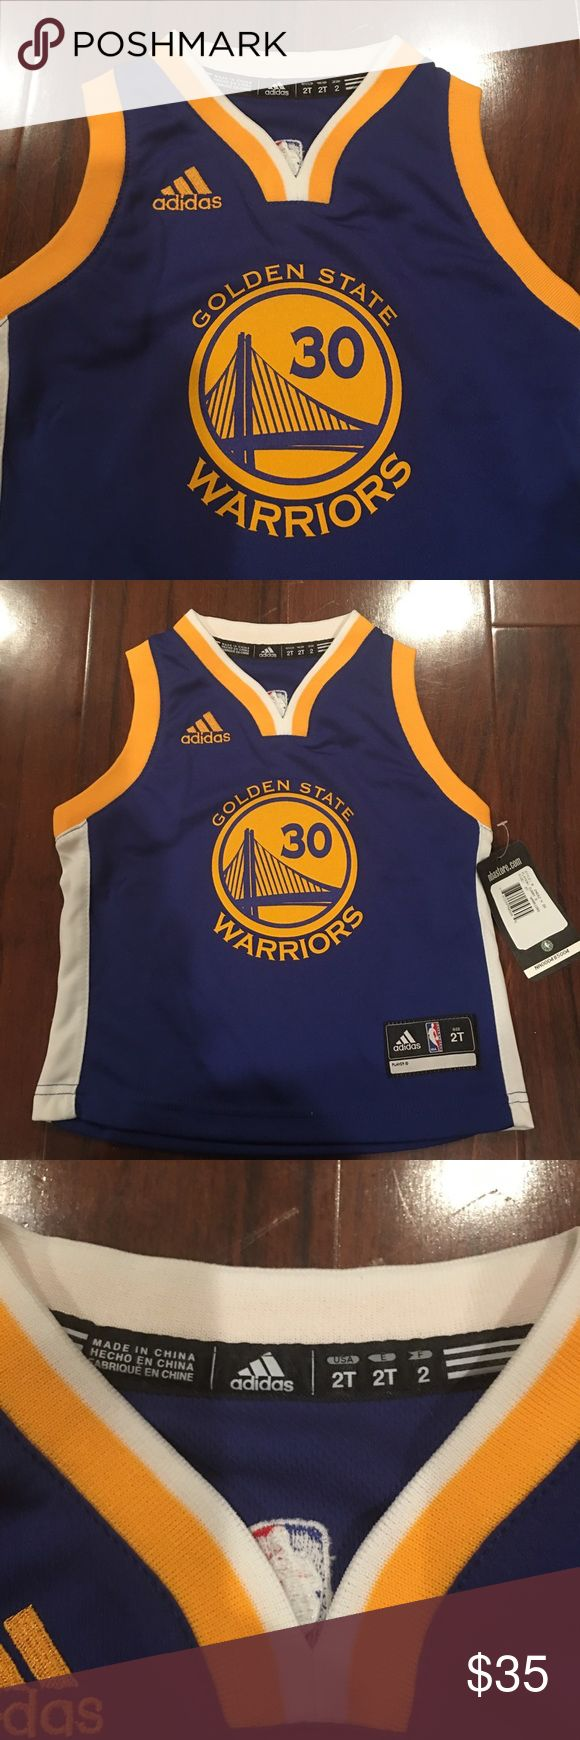 Adidas Golden State Warriors Stephen Curry Jersey Adidas Golden State Warriors Stephen Curry Toddler Replica Road Jersey - Royal Blue. Never Been Worn. NWT-- son received two jerseys as gifts. Perfect for your little sports fan! Size 2 Toddler Adidas Shirts & Tops Tank Tops